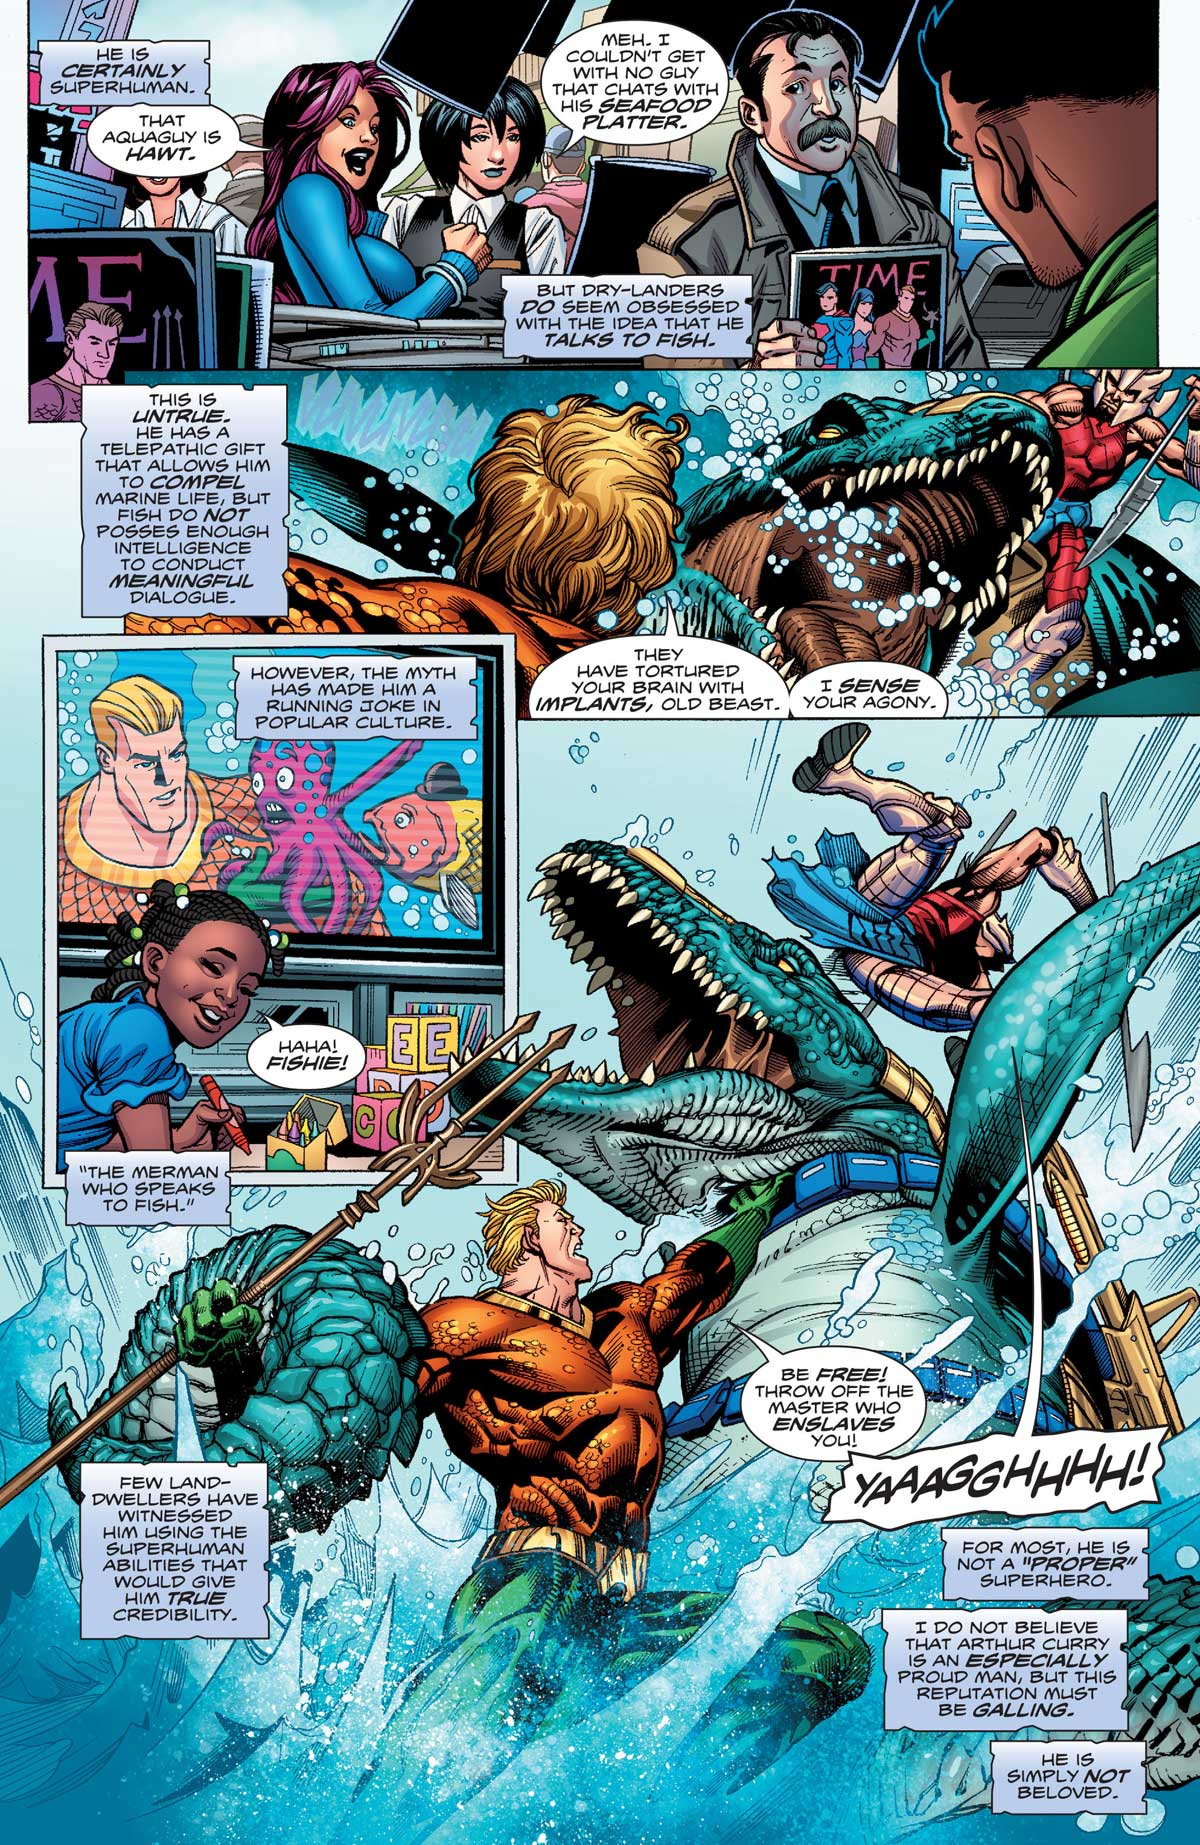 Aquaman Rebirth by Dan Abnett, Scot Eaton, Oscar Jimenez, Mark Morales and more